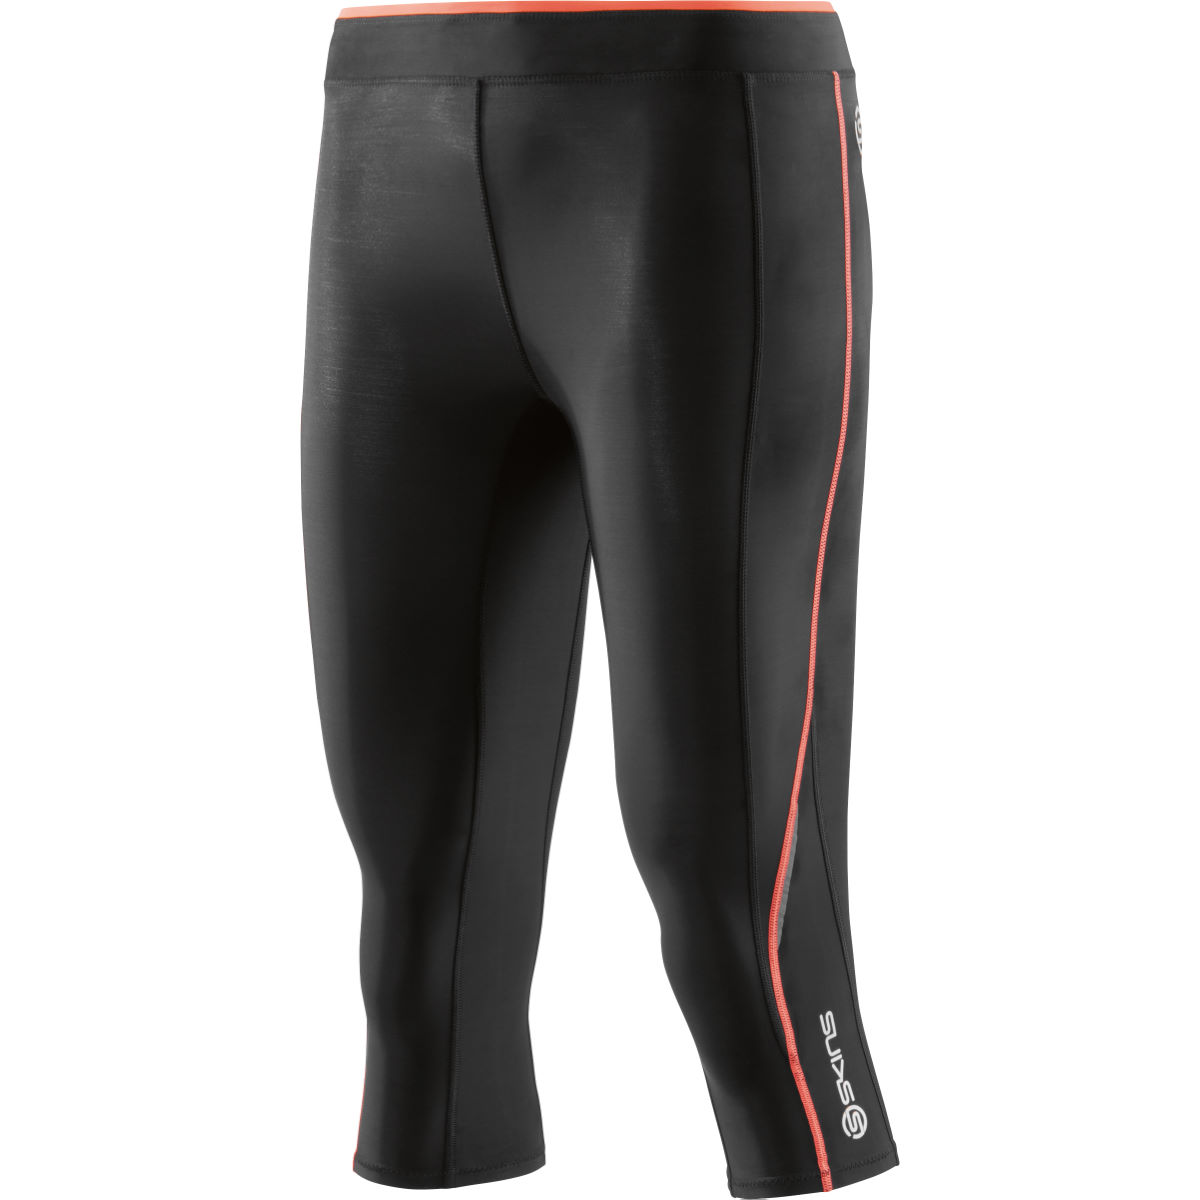 SKINS Womens Pacer A200 Capri Tights   Compression Base Layers